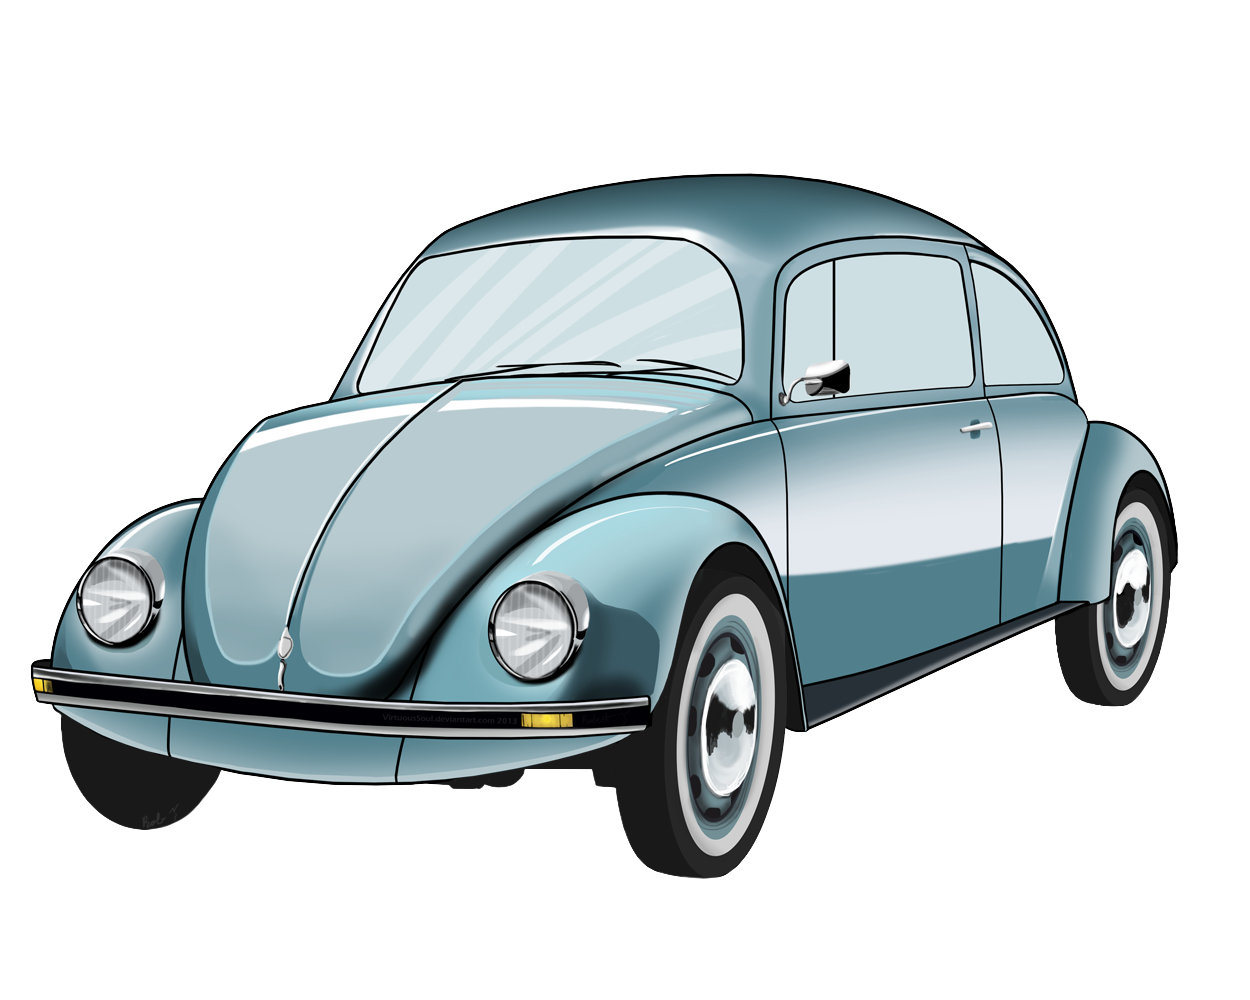 Free Vw Bug Clipart, Download Free Clip Art, Free Clip Art.